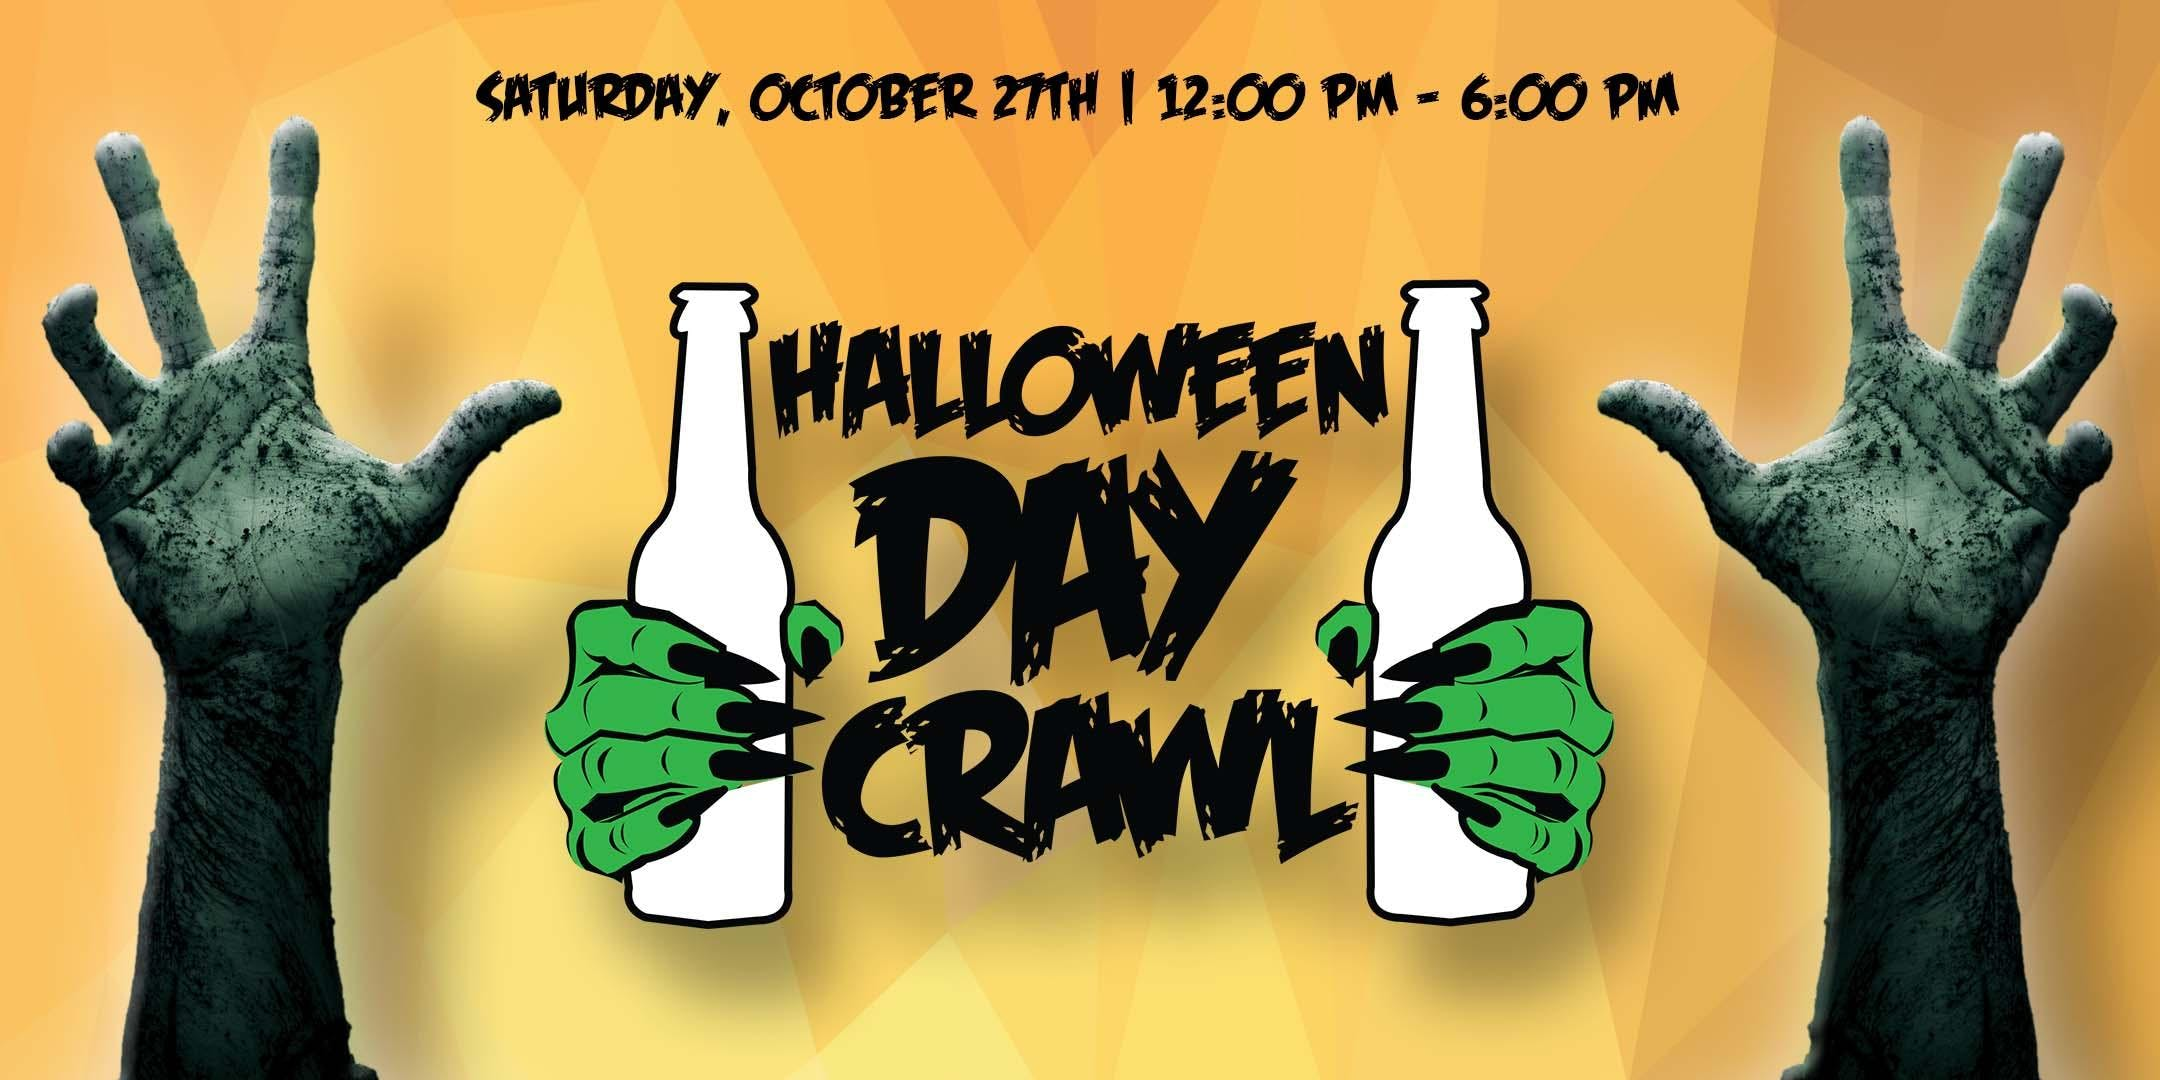 Halloween Day Crawl - Sat. Oct. 27th in Old Town - Scottsdale